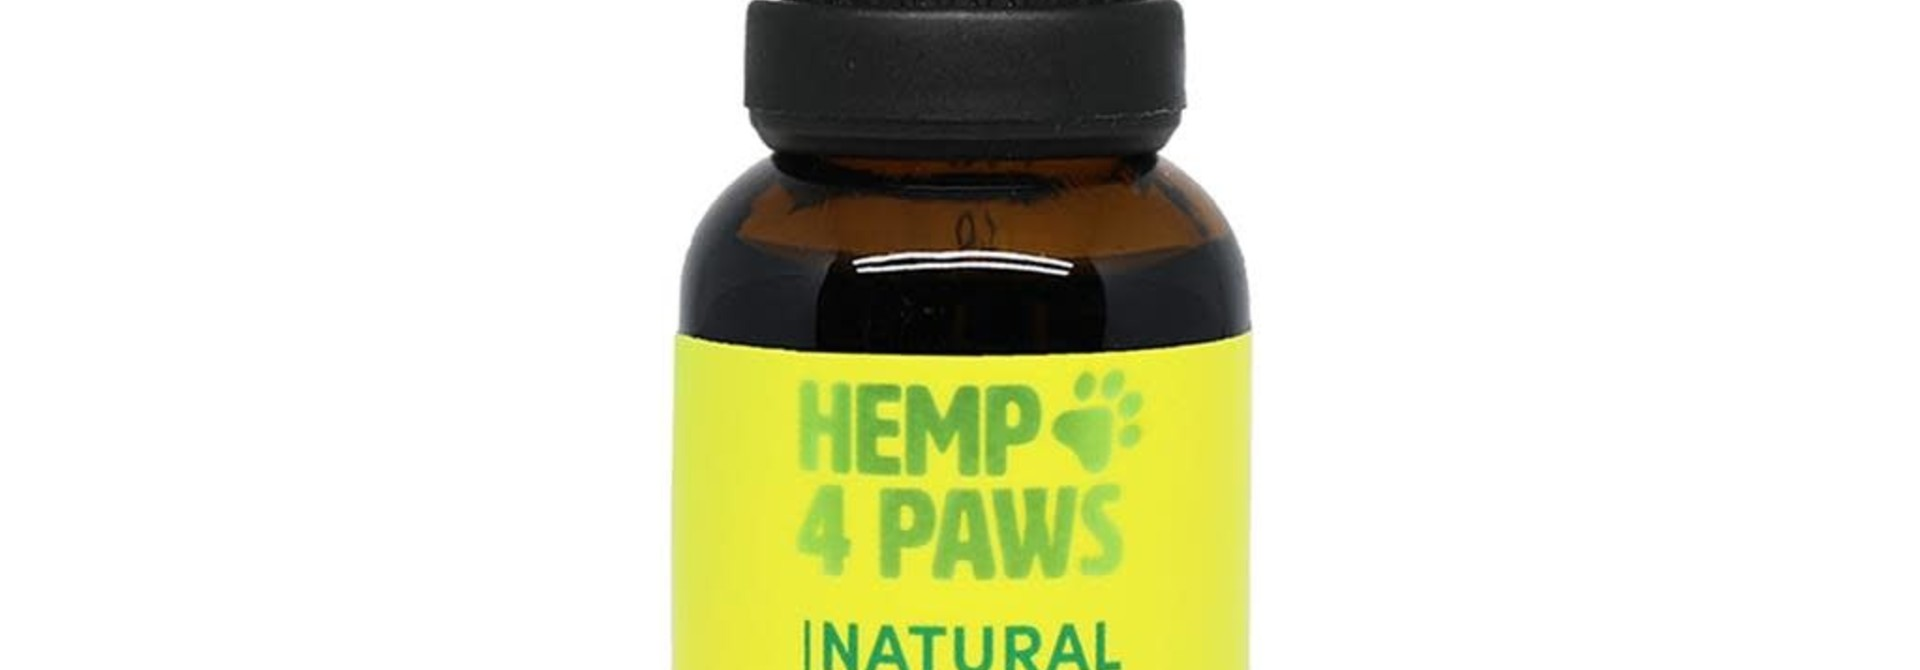 Hemp Seed Oil Wild Salmon Flavour